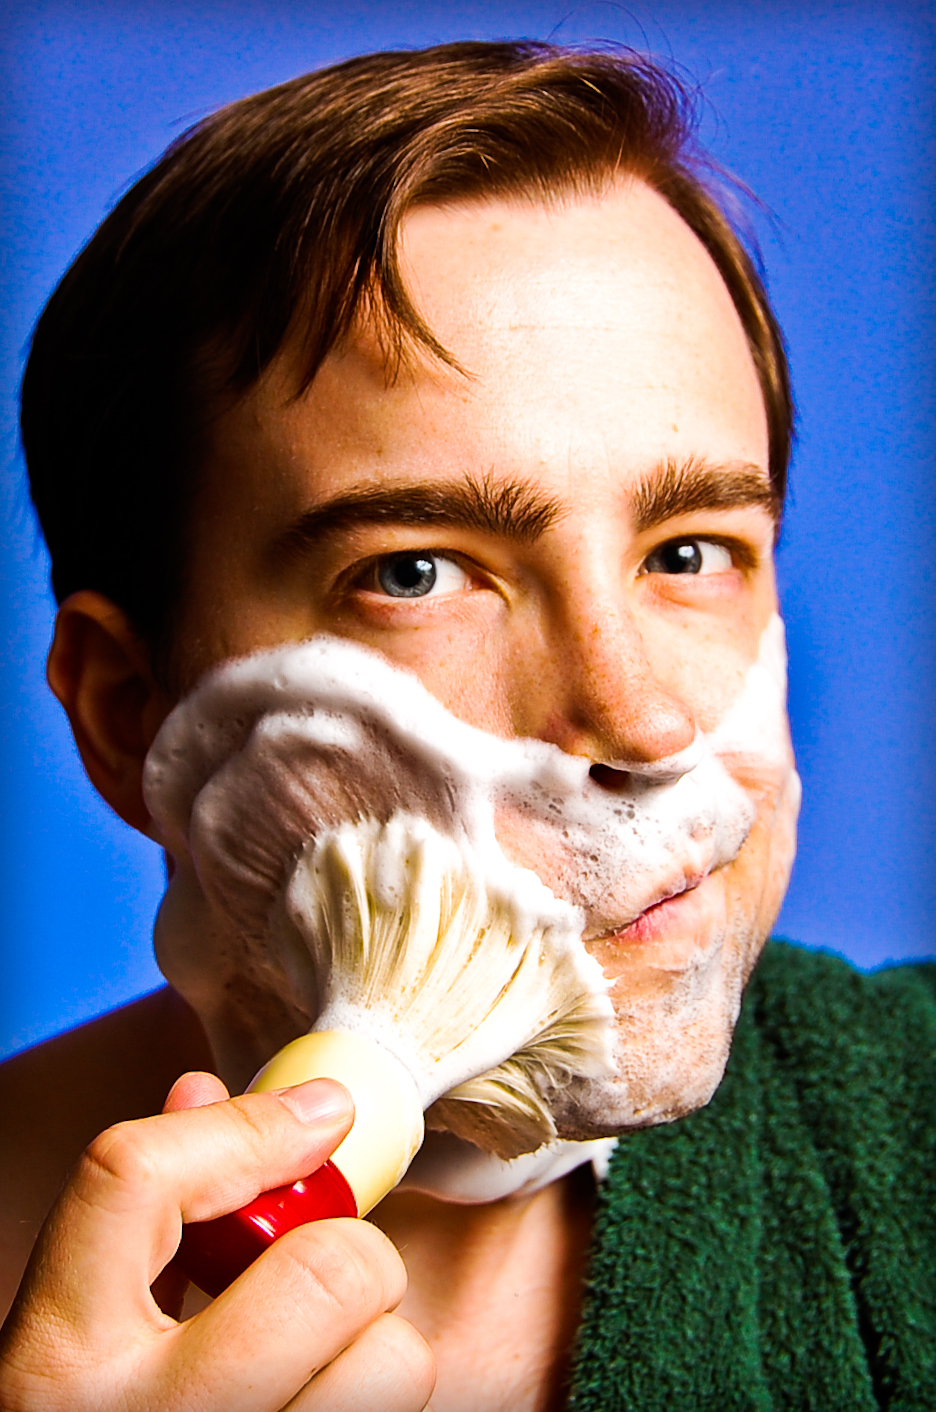 best mens style shaving grooming lifestyle fashion blog i love shaving every day